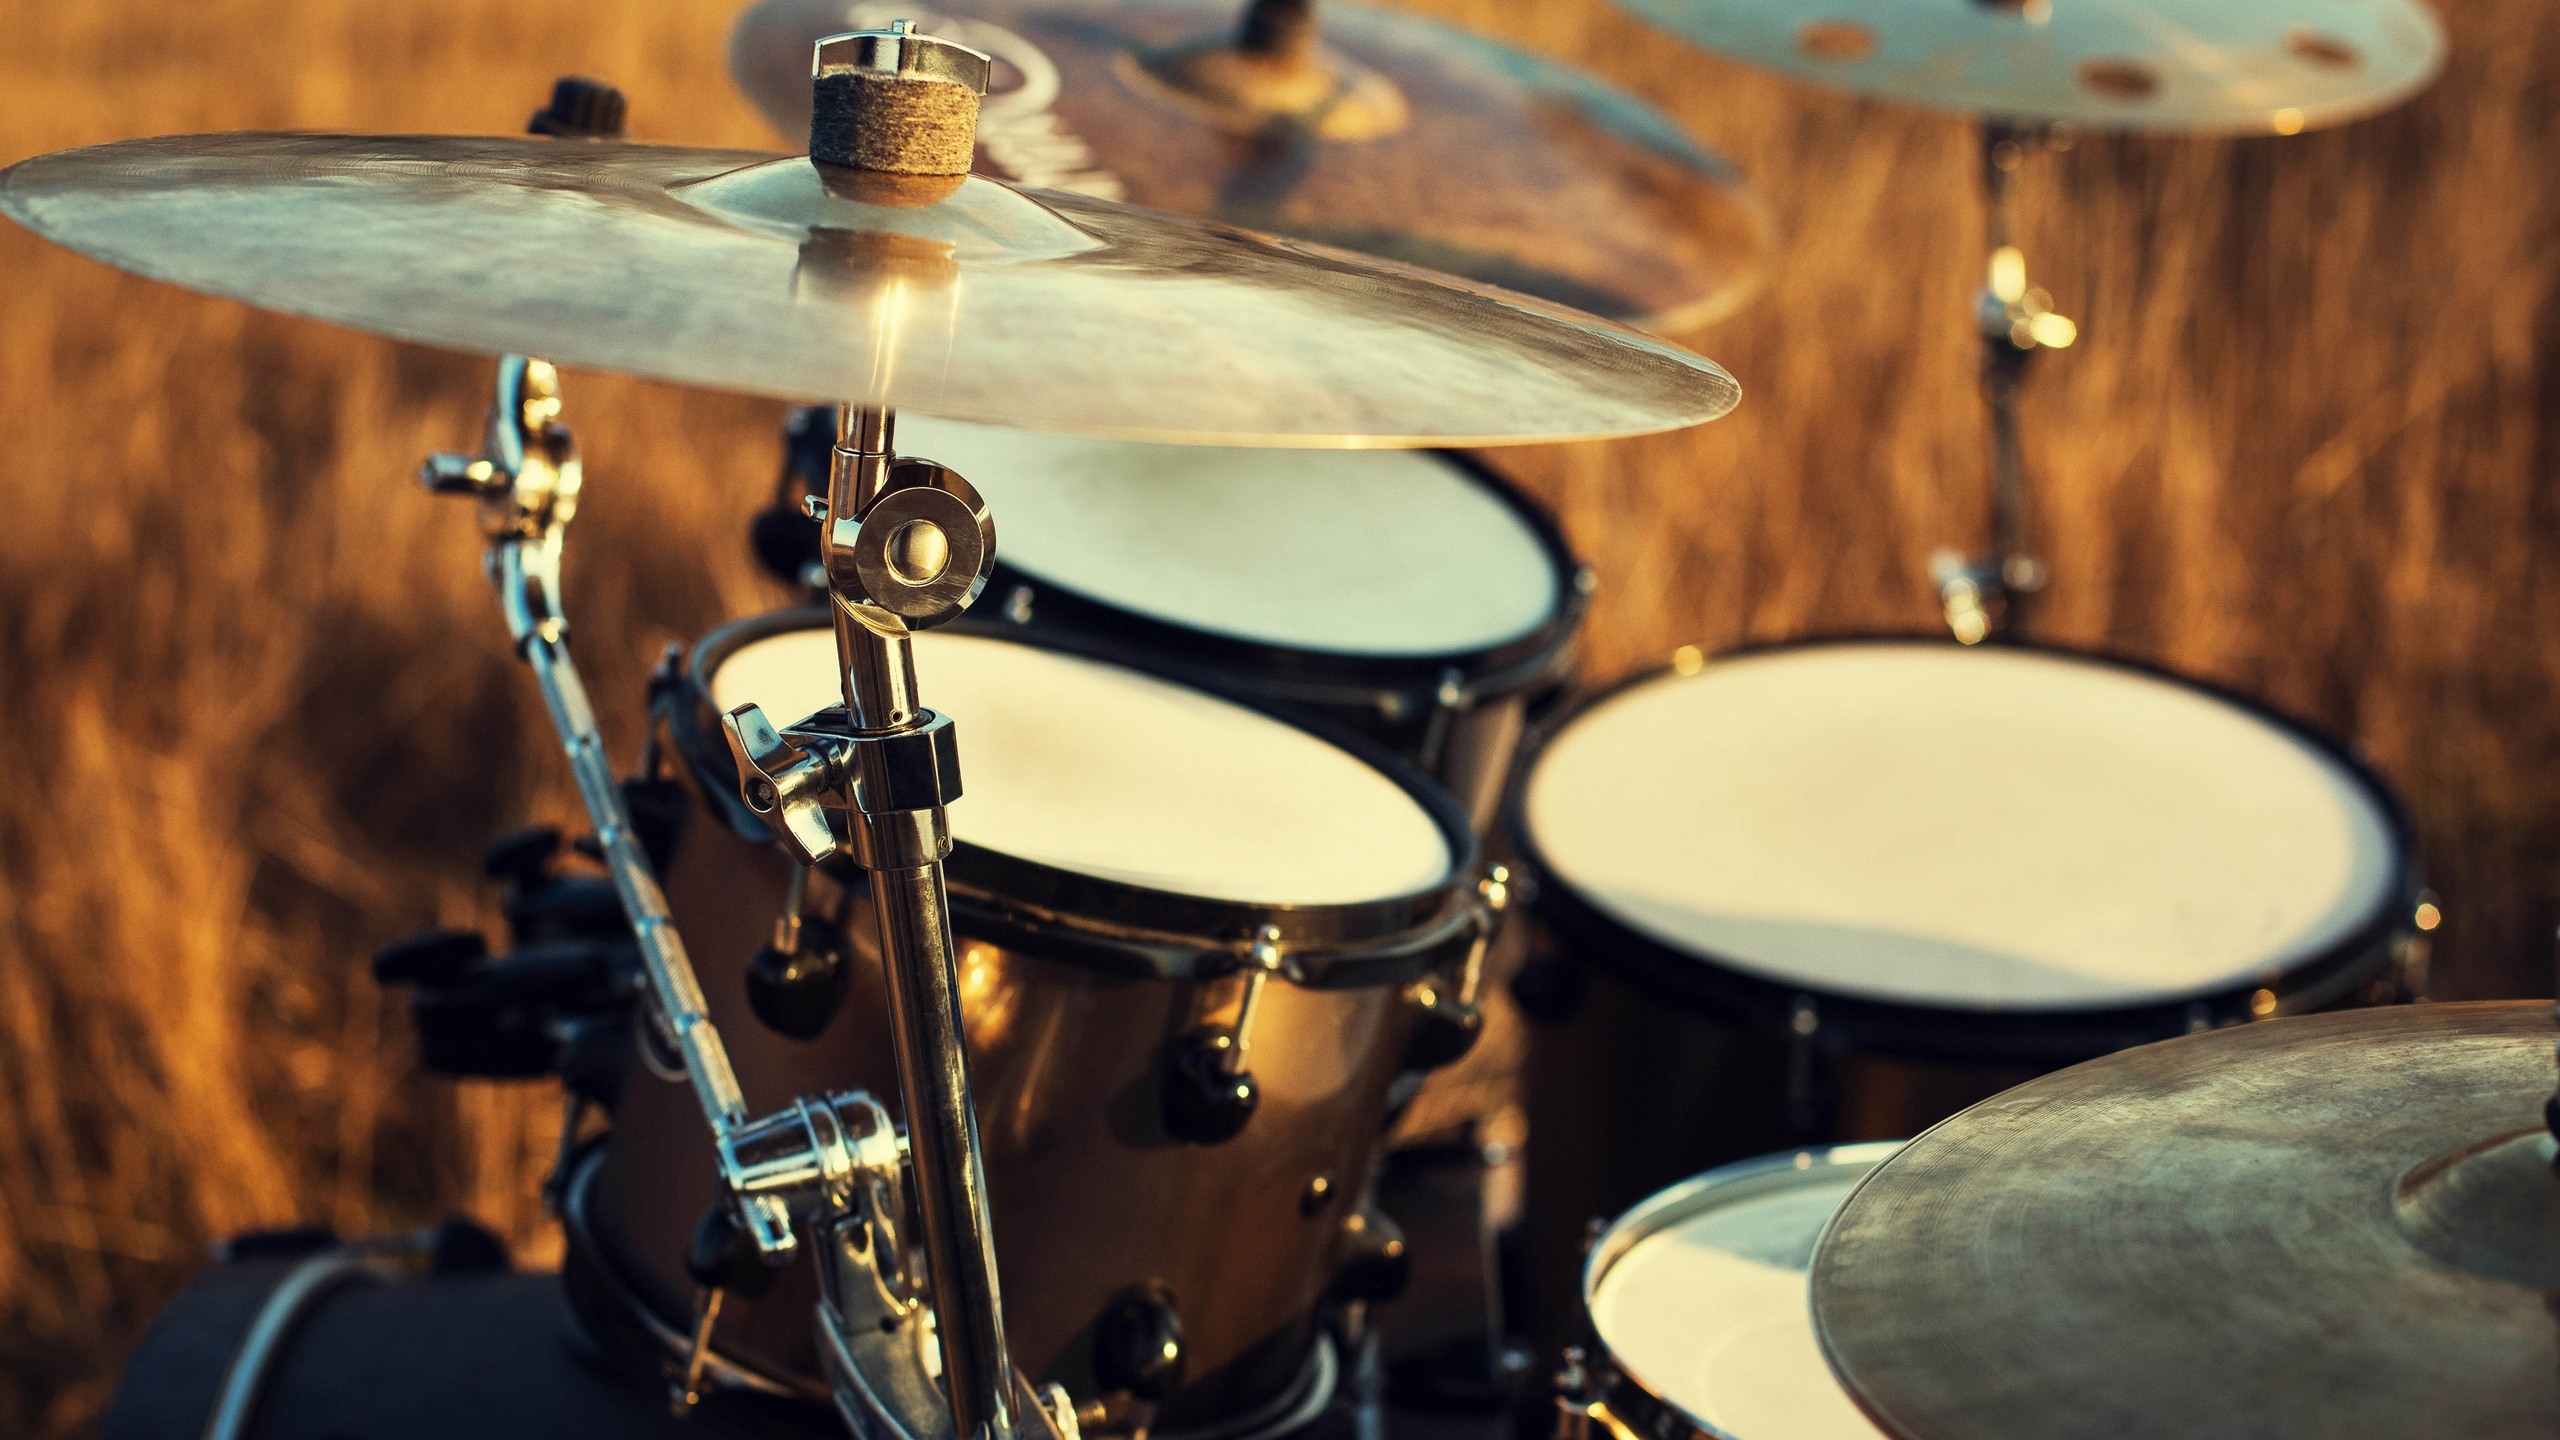 Drums Wallpapers 2560x1440 1031141